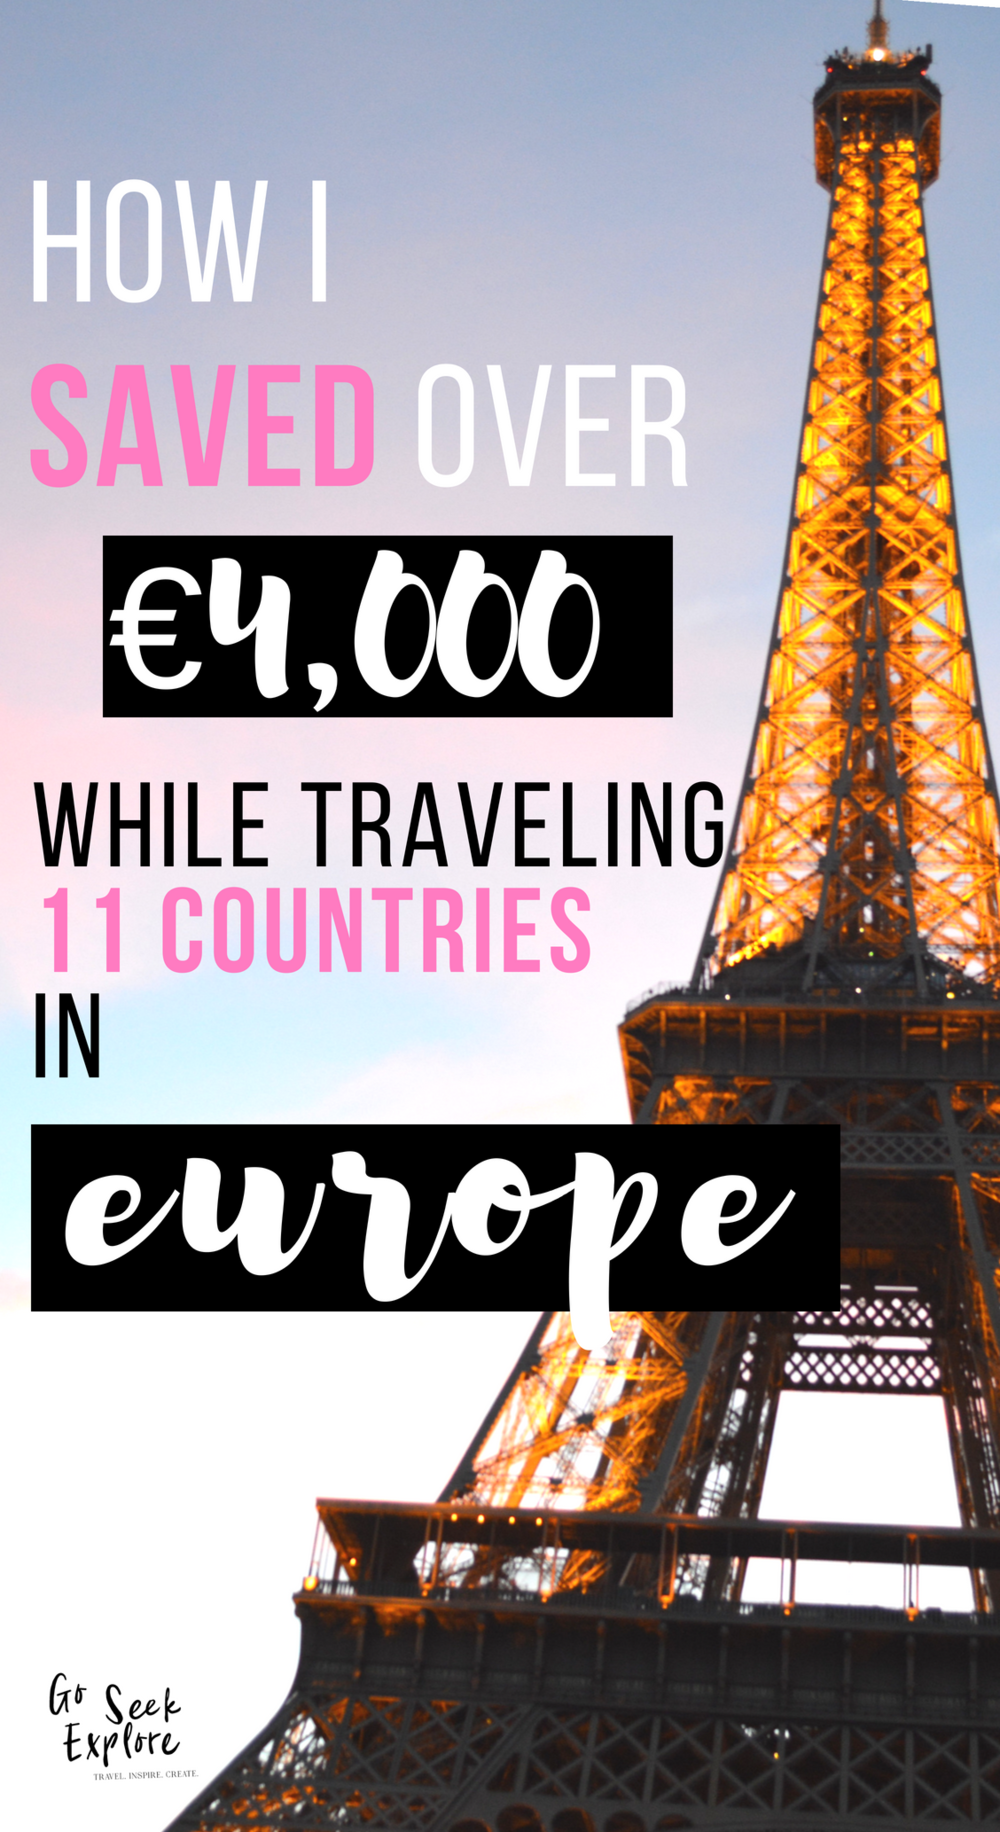 Exactly how I saved 4,000 euros while traveling 11 countries in Europe - and stretched my travel budget of only $1400 over 6 months! Real and raw advice on how much you should save for a trip to Europe on goseekexplore.com.